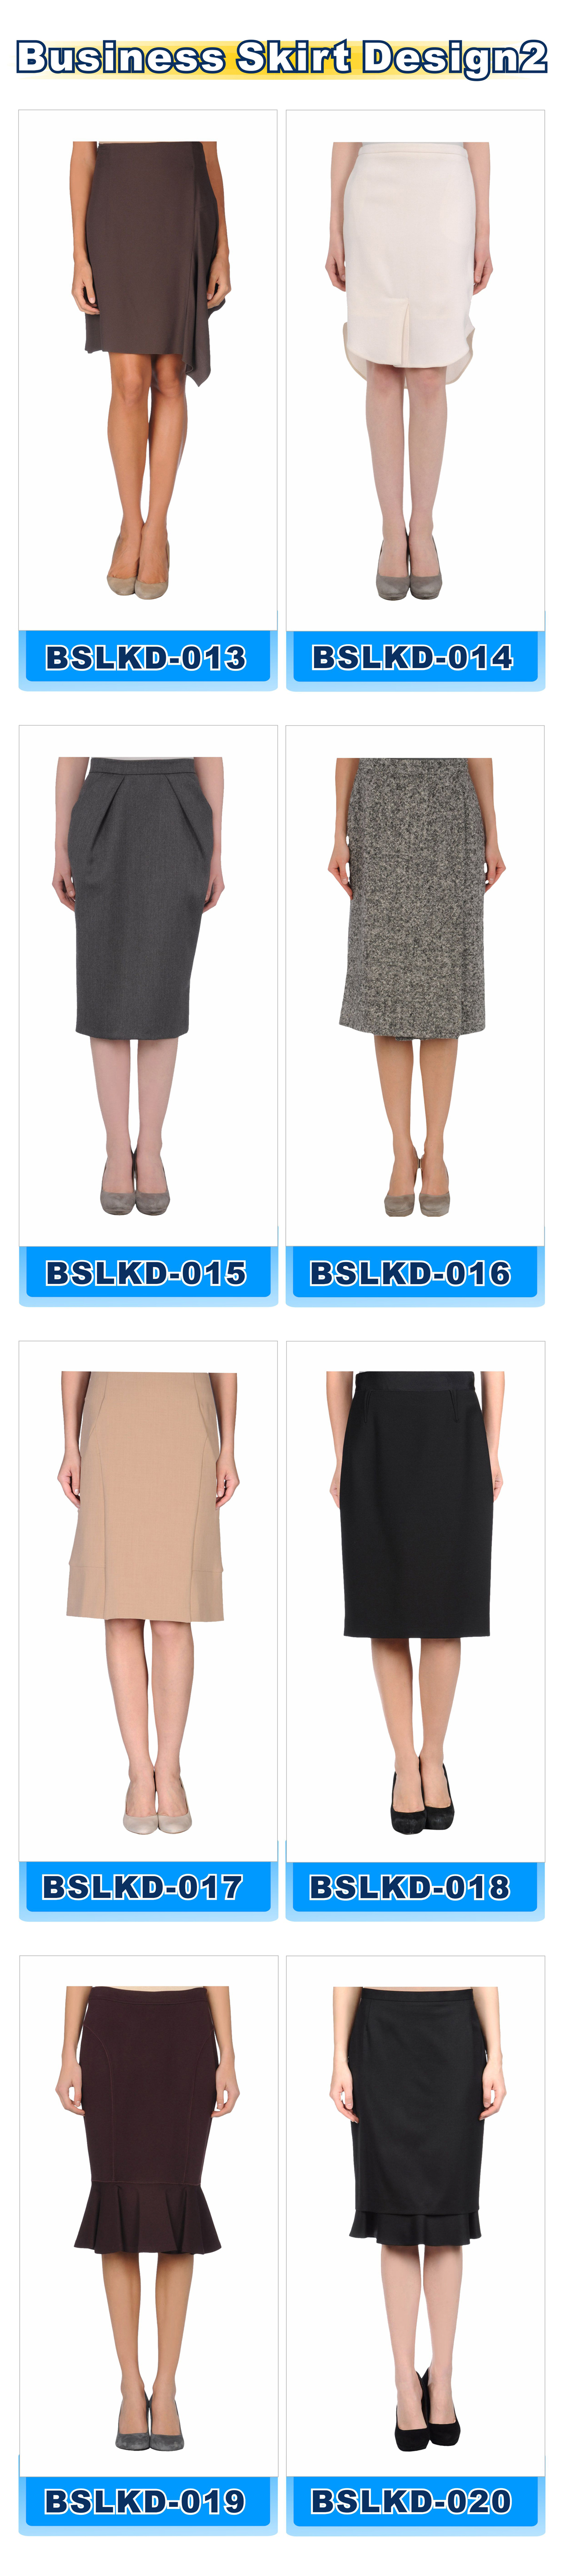 business skirts design2-20121101